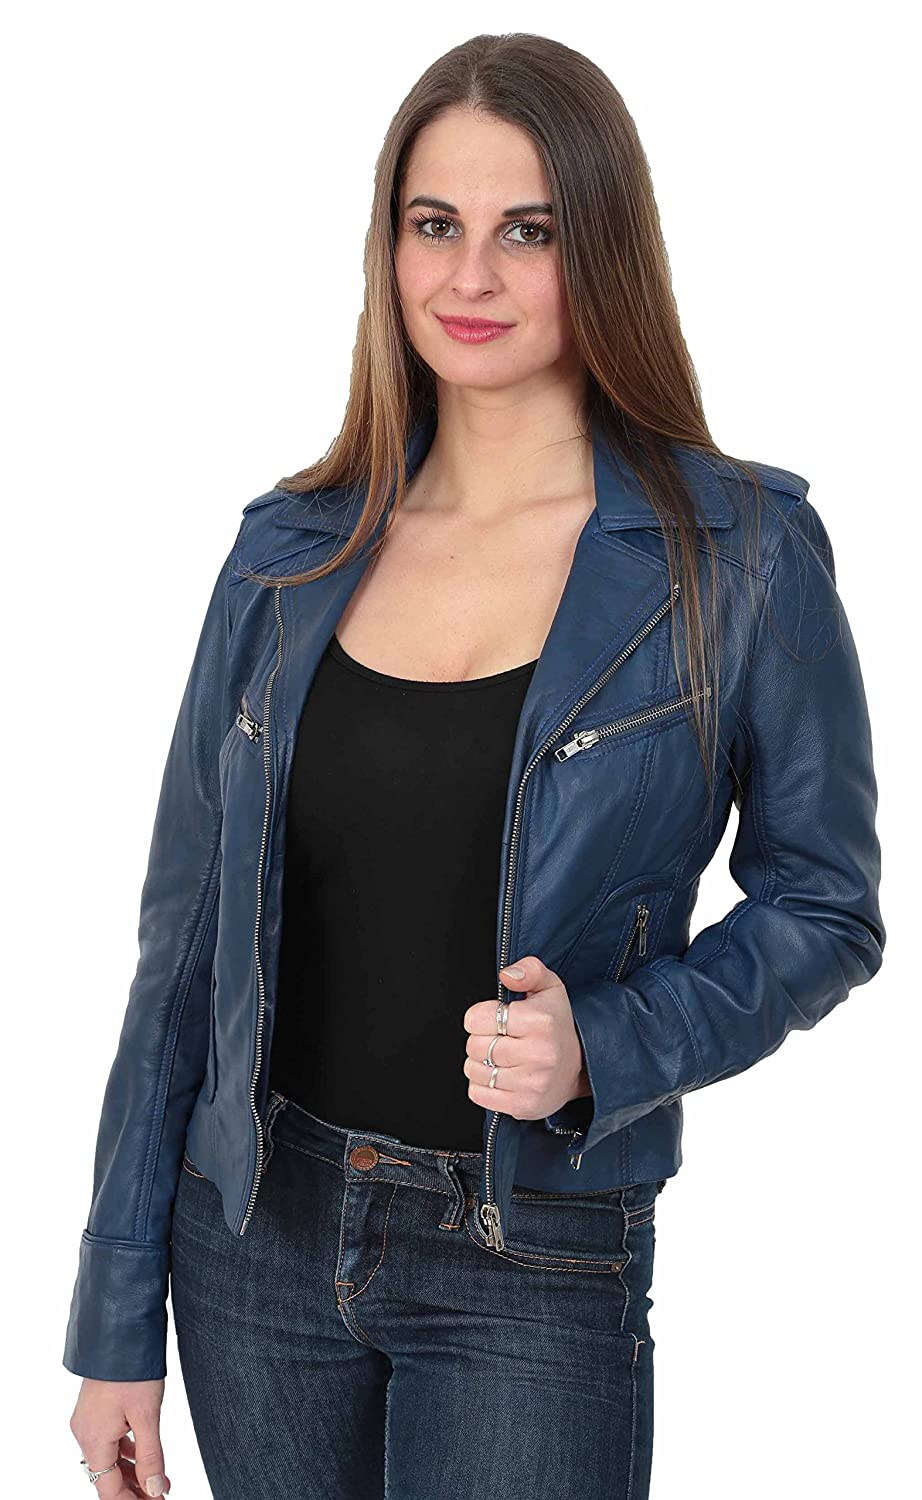 63926dd57cbfb A1 FASHION GOODS Womens Slim fit Navy Blue Real Leather Jacket Biker Style  Zip Coat Betty at Amazon Women s Coats Shop